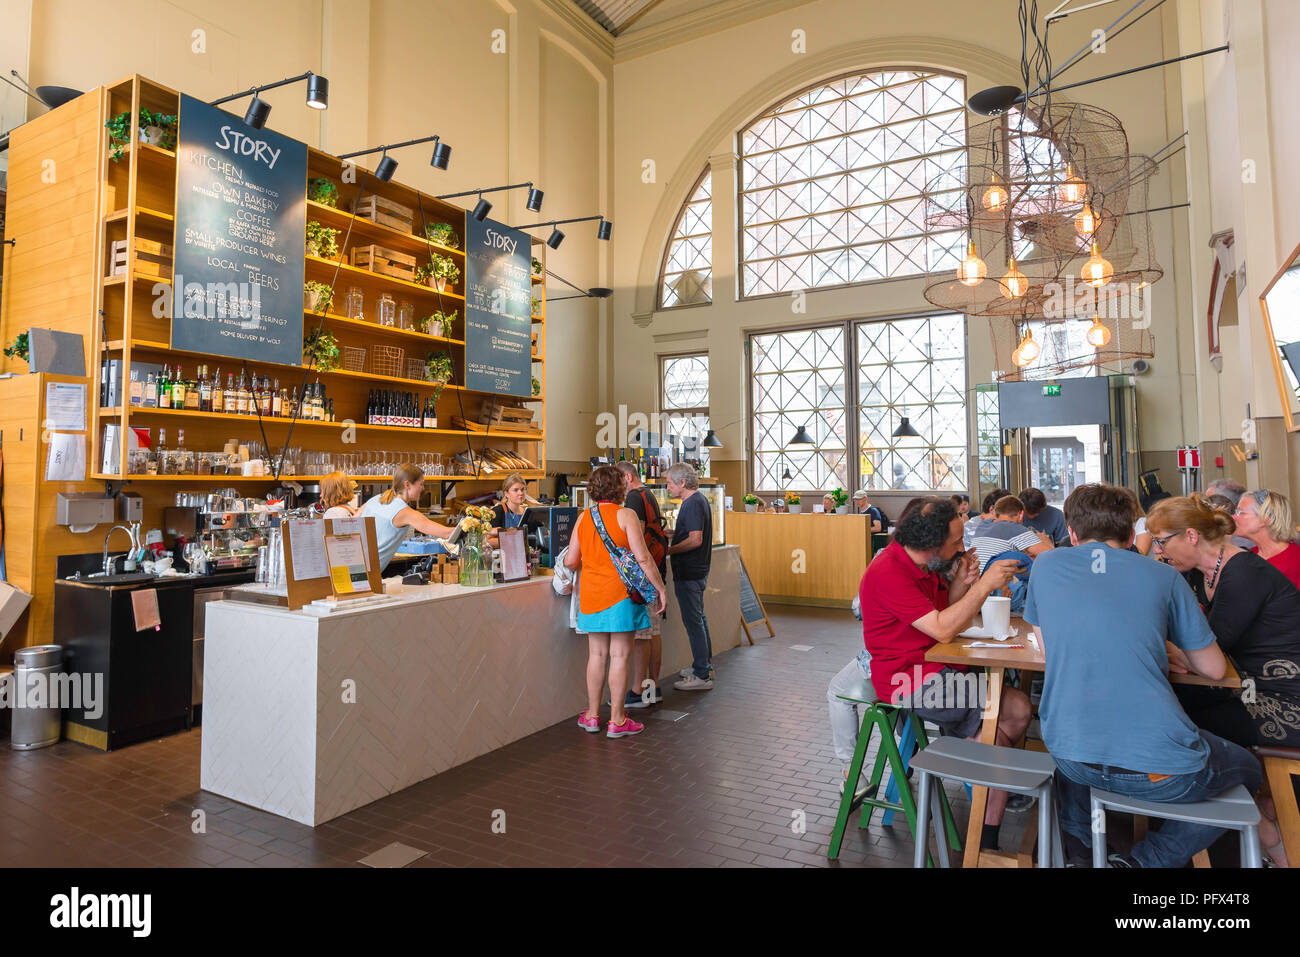 Helsinki cafe, view of the Story cafe bar inside the Vanha Kauppahalli (Market Hall) in the harbor area of Helsinki, Finland. - Stock Image